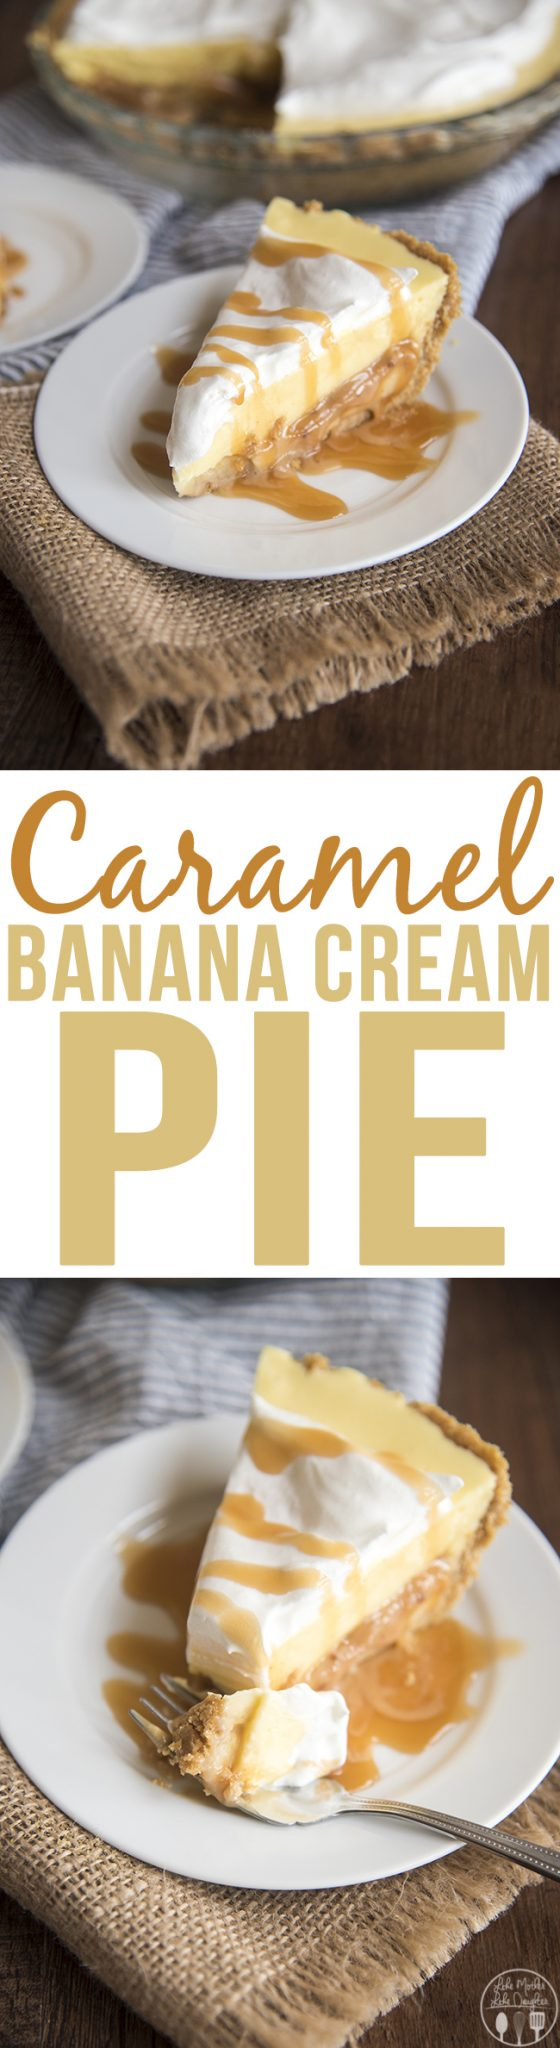 Caramel Banana Cream Pie - This caramel banana cream pie has a delicious graham cracker crust, followed by a caramel layer, topped by banana pudding and whipped cream for a delicious twist on traditional banana cream pie!